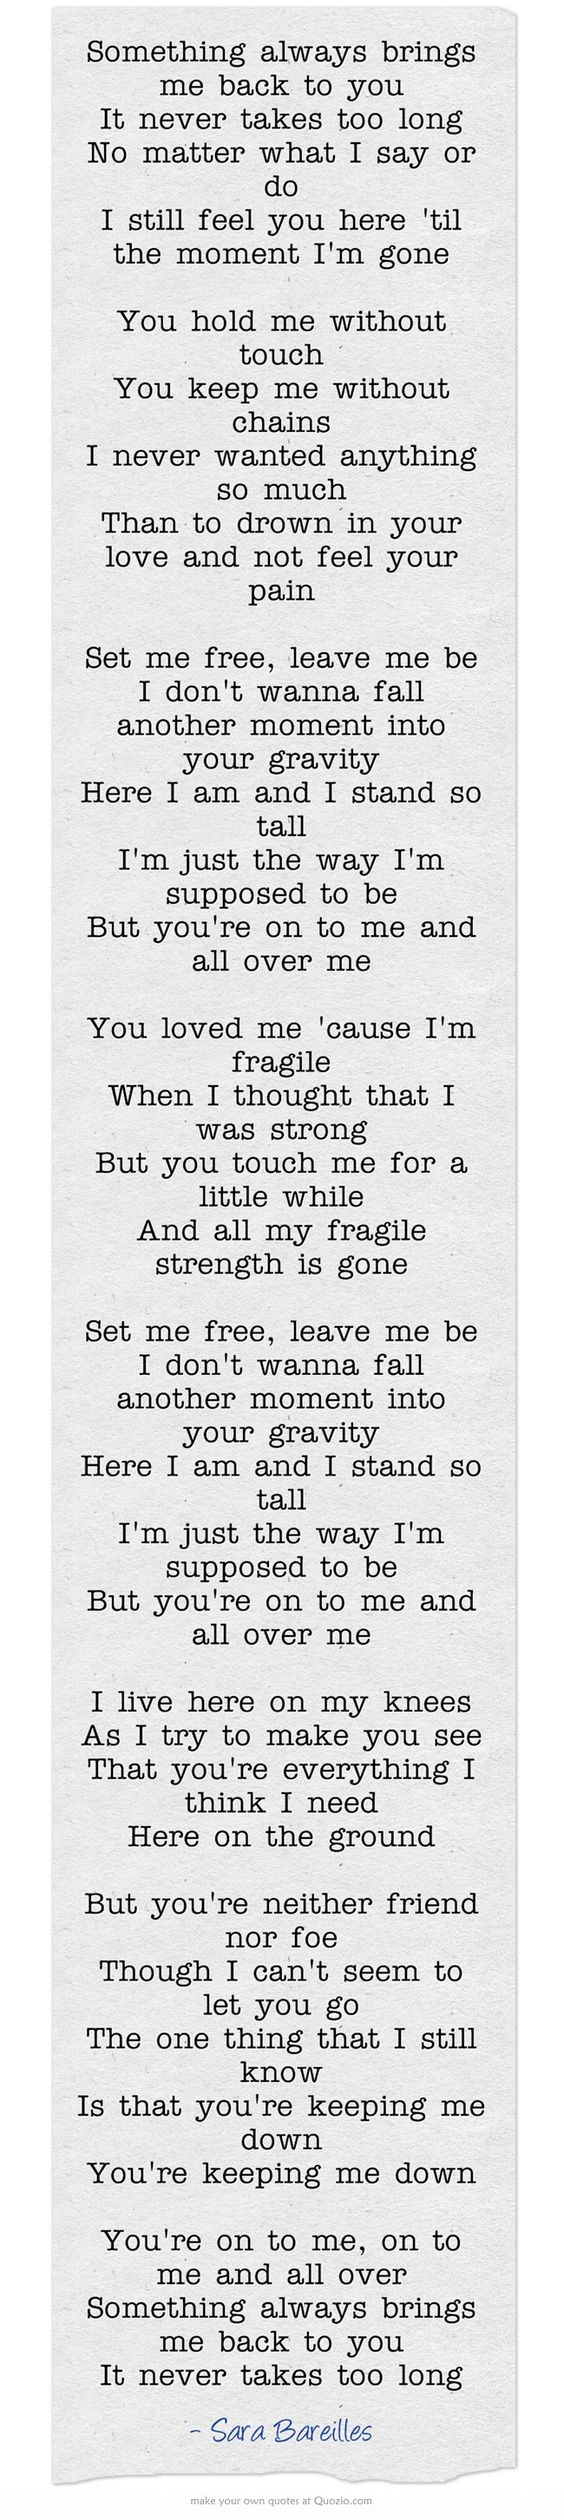 """""""Gravity"""" by Sara Bareilles is one of my absolute favorite songs. I love the lyrics, the melody, Sara's voice, and just everything about this song. It's definitely on my top 10 favorite songs of all time."""